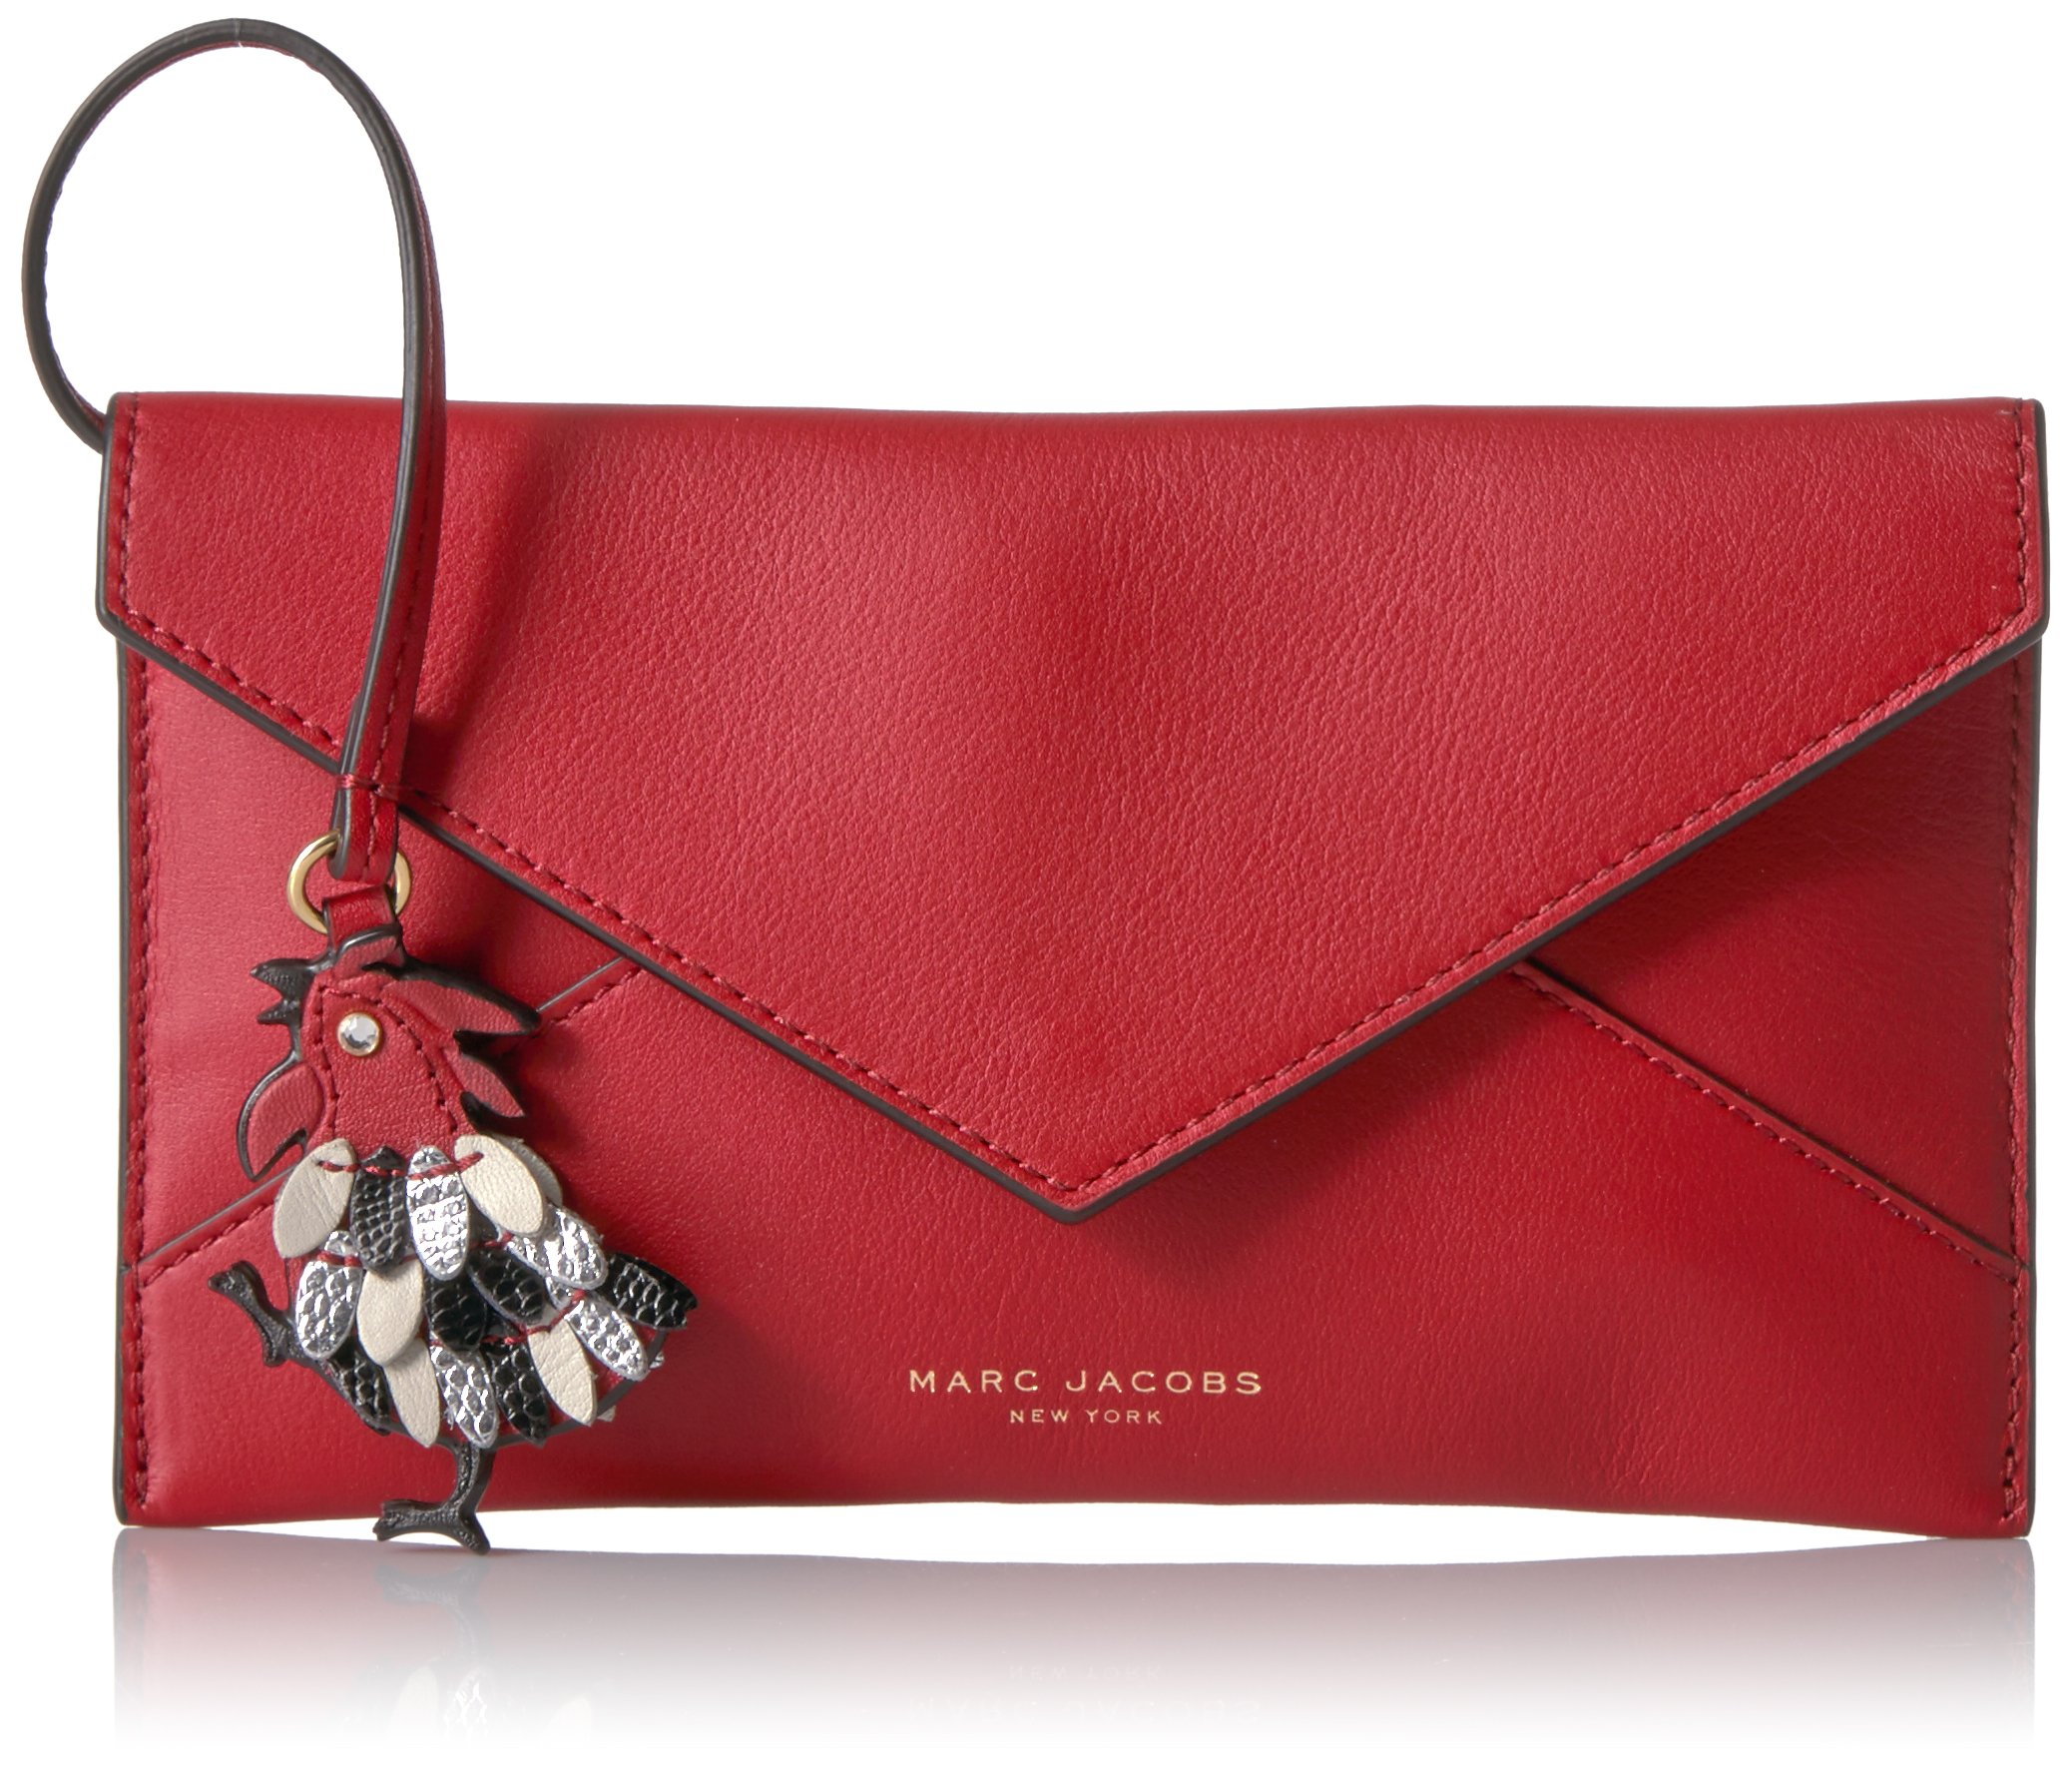 Marc Jacobs Women's Rooster Envelope Coin Purse, Scarlet, One Size by Marc Jacobs